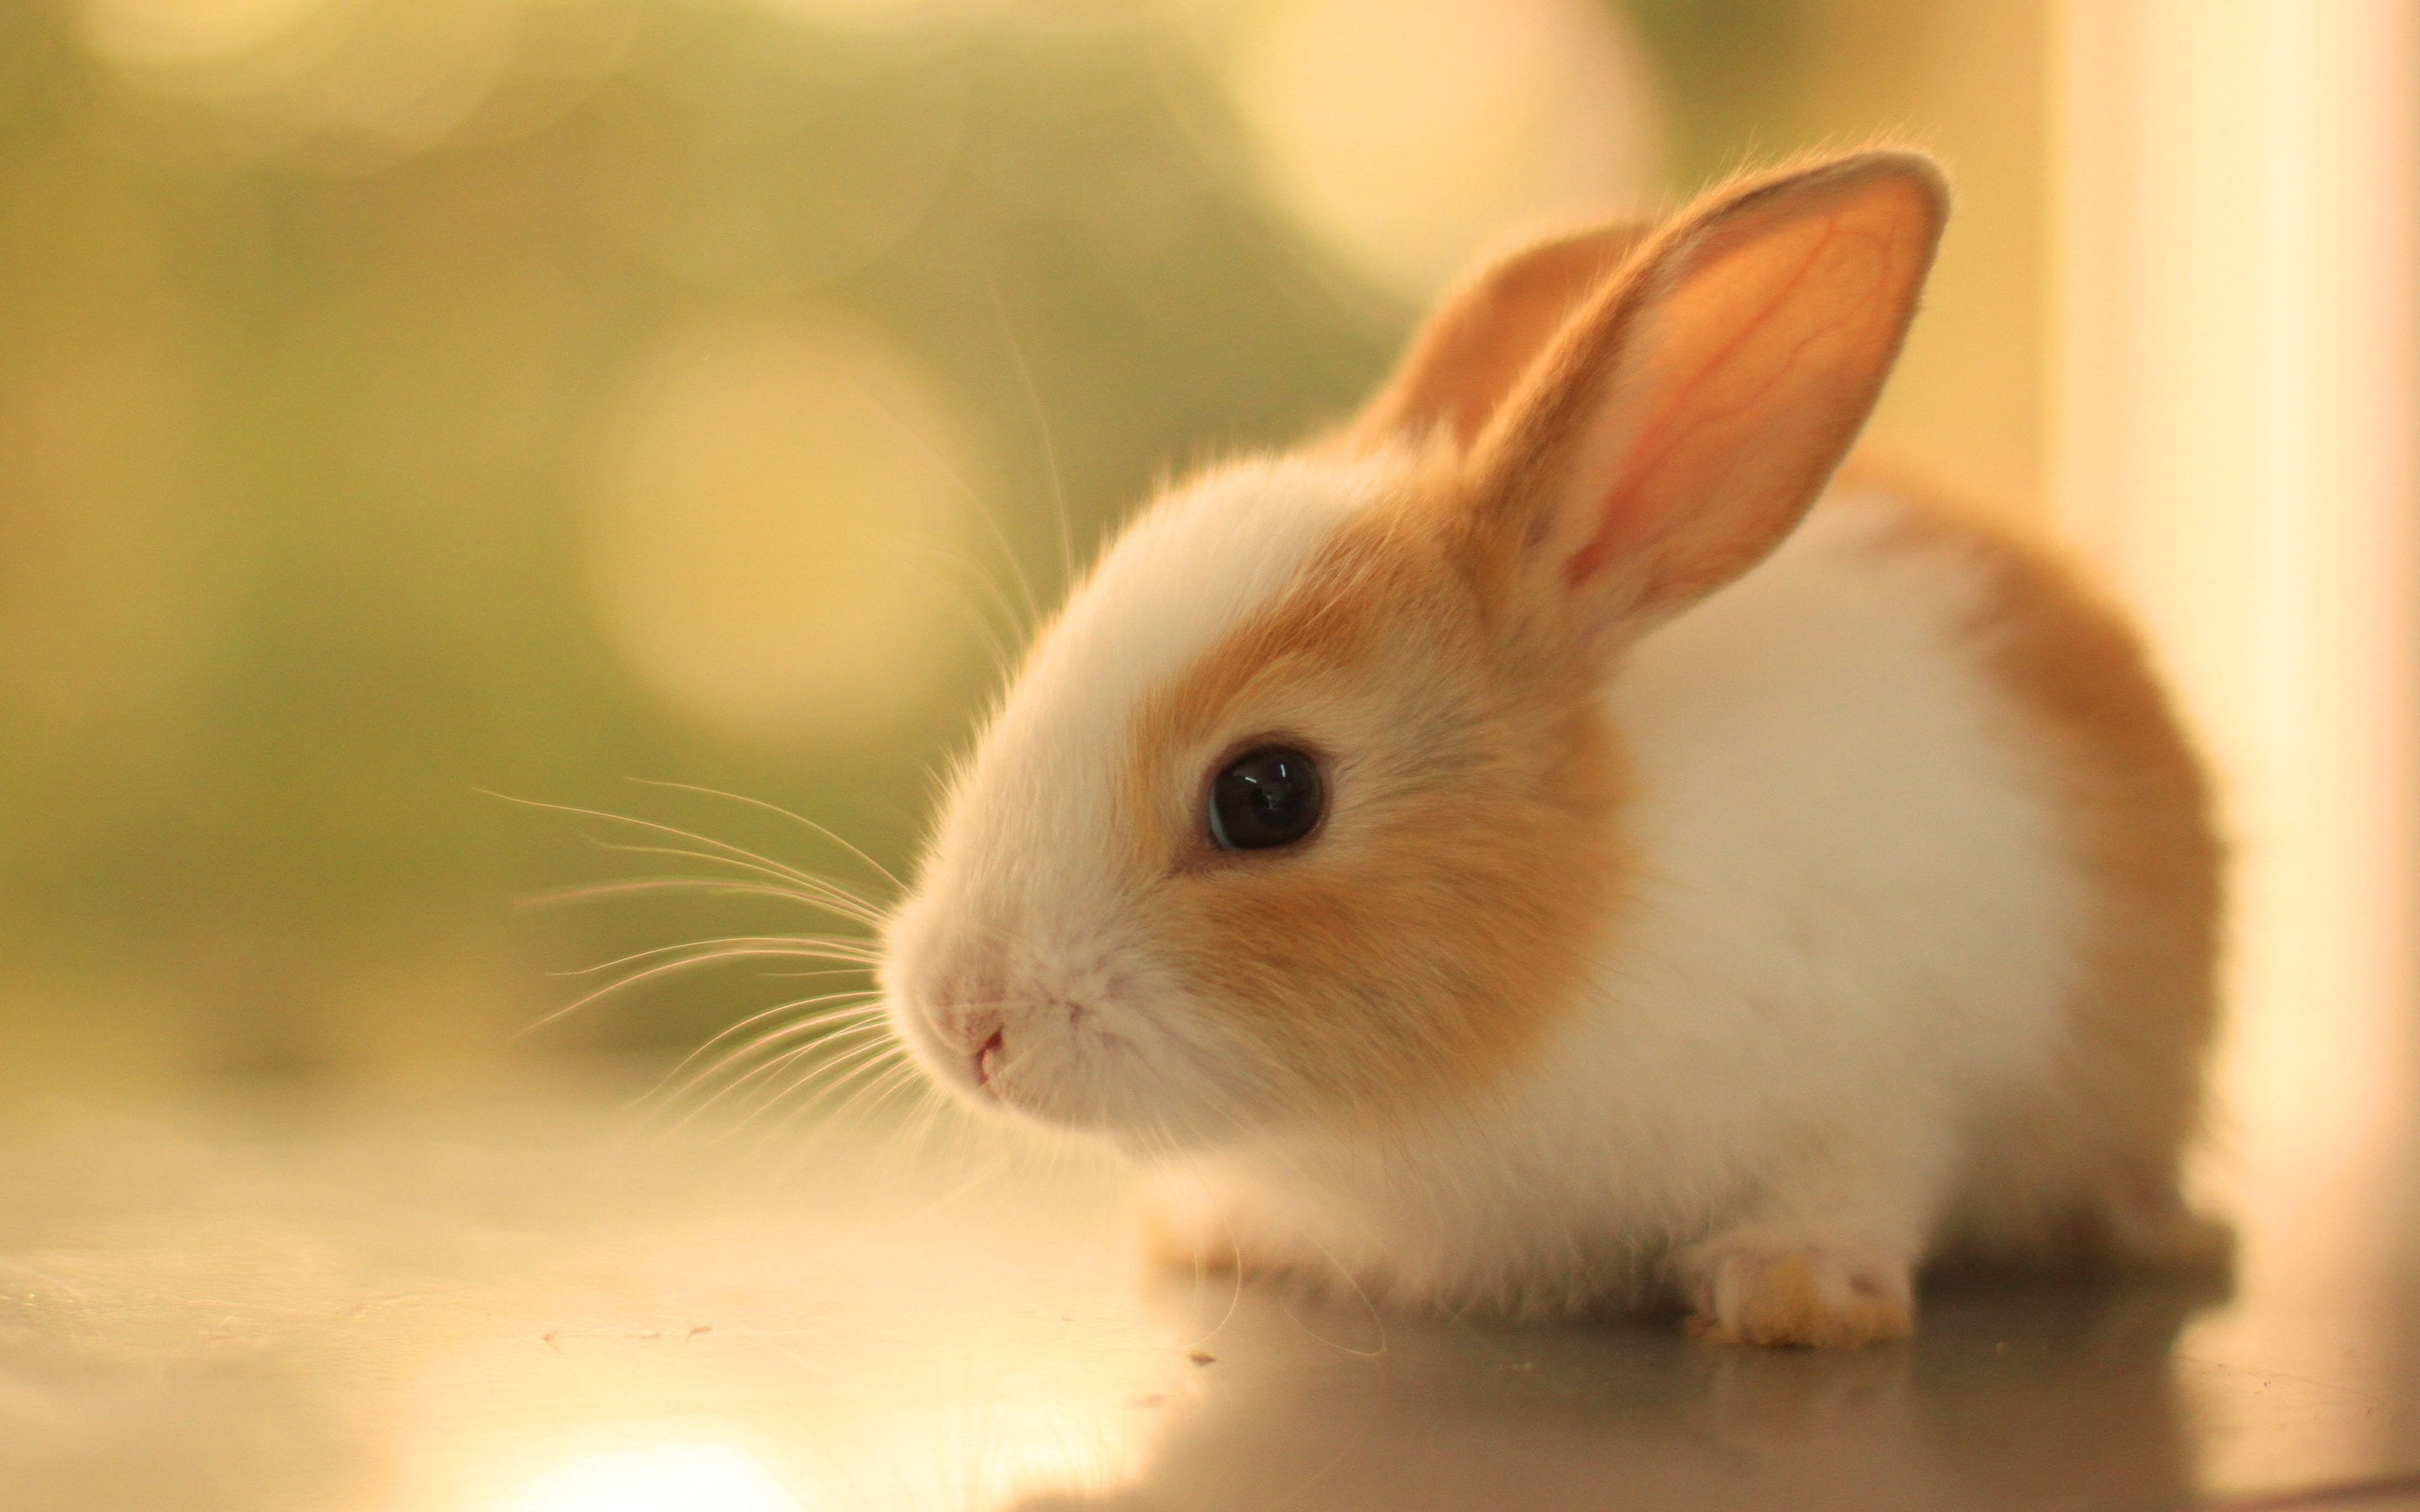 Cute-Baby-Bunny-HD-Wallpapers